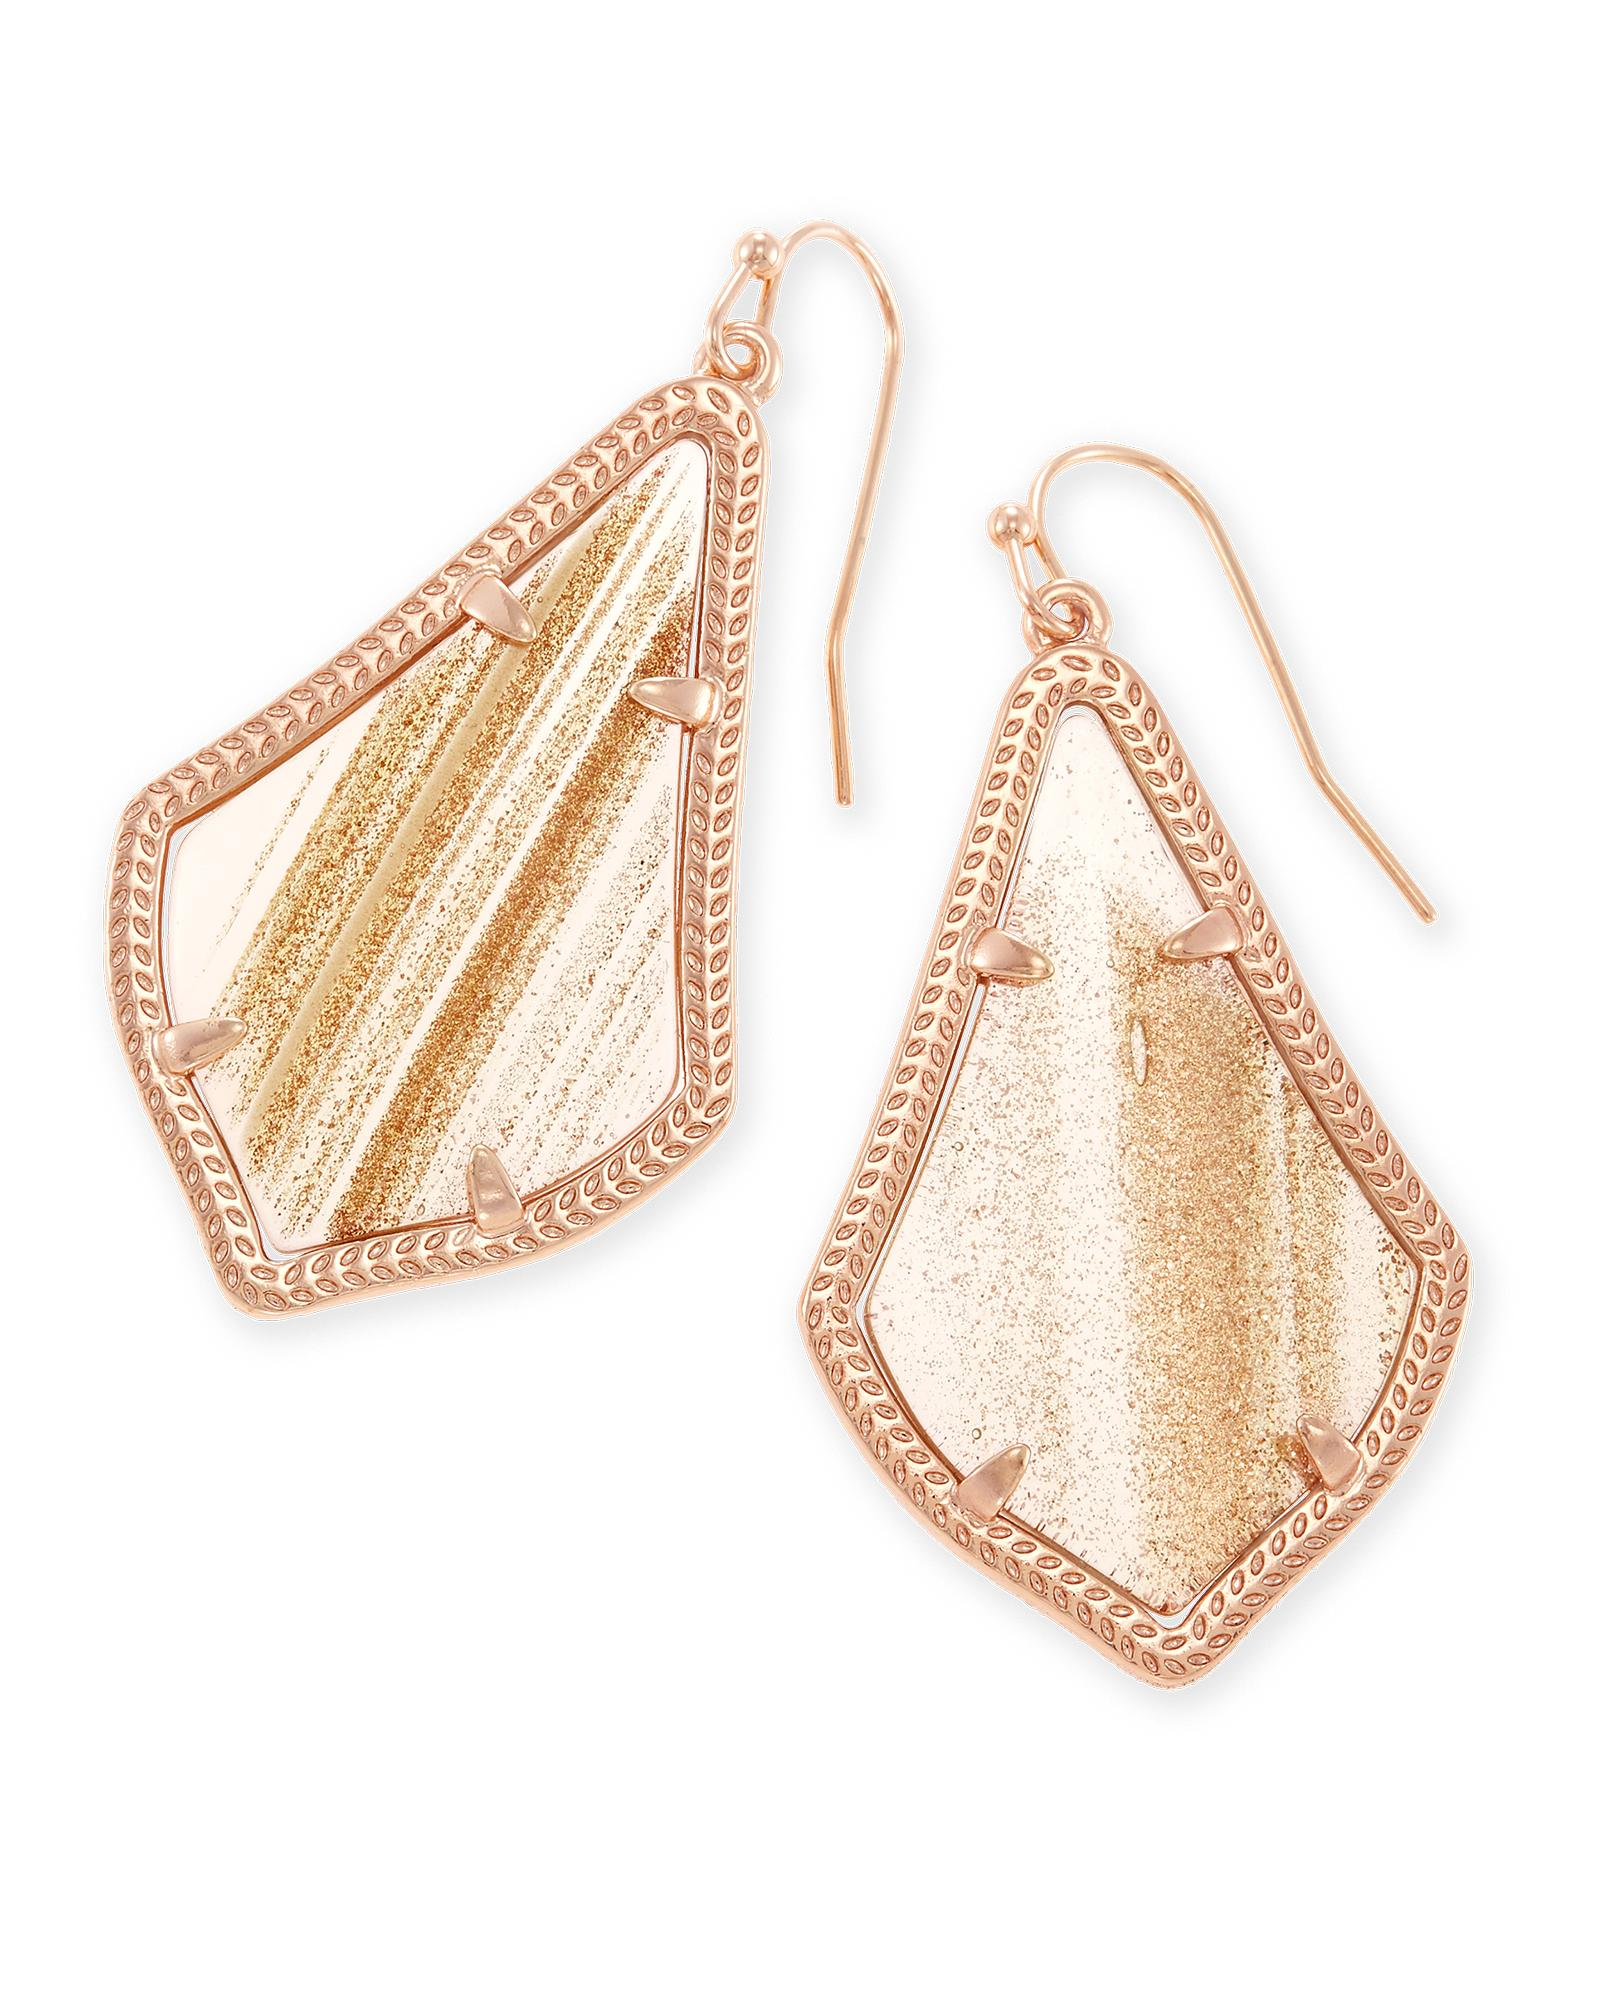 Alex Drop Earrings in Gold Dusted Glass